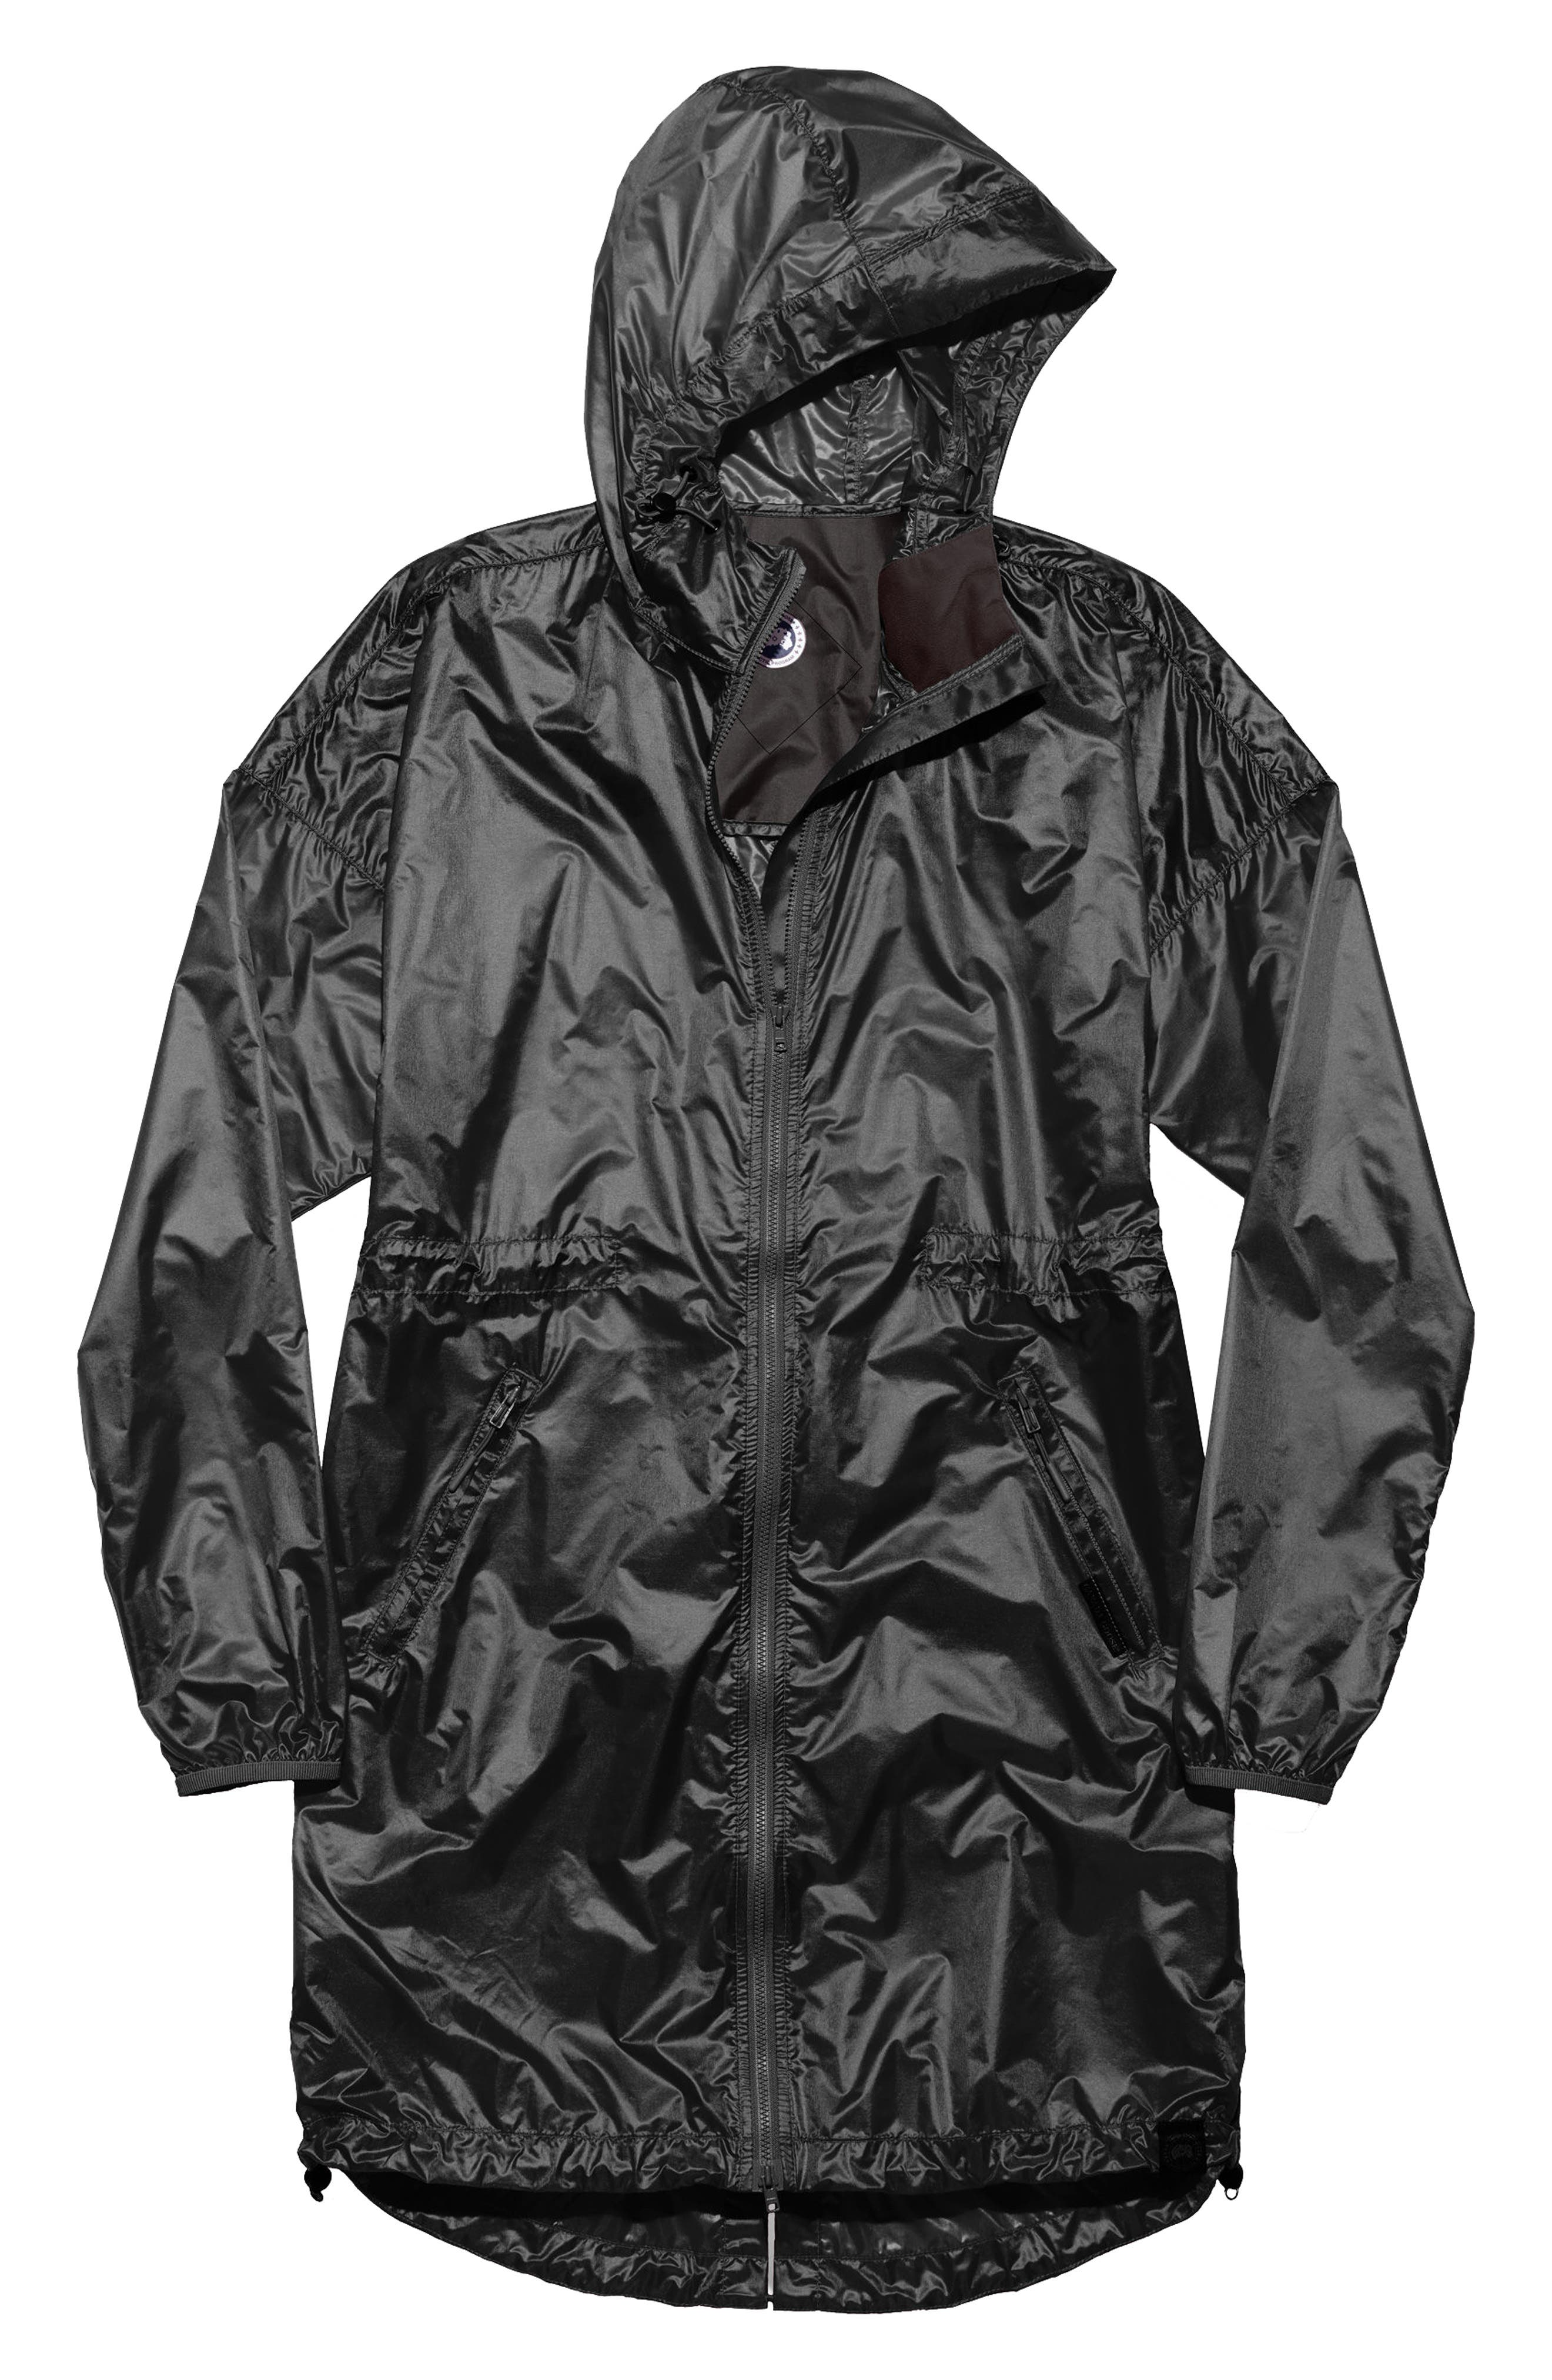 Rosewell Hooded Jacket,                             Alternate thumbnail 4, color,                             001